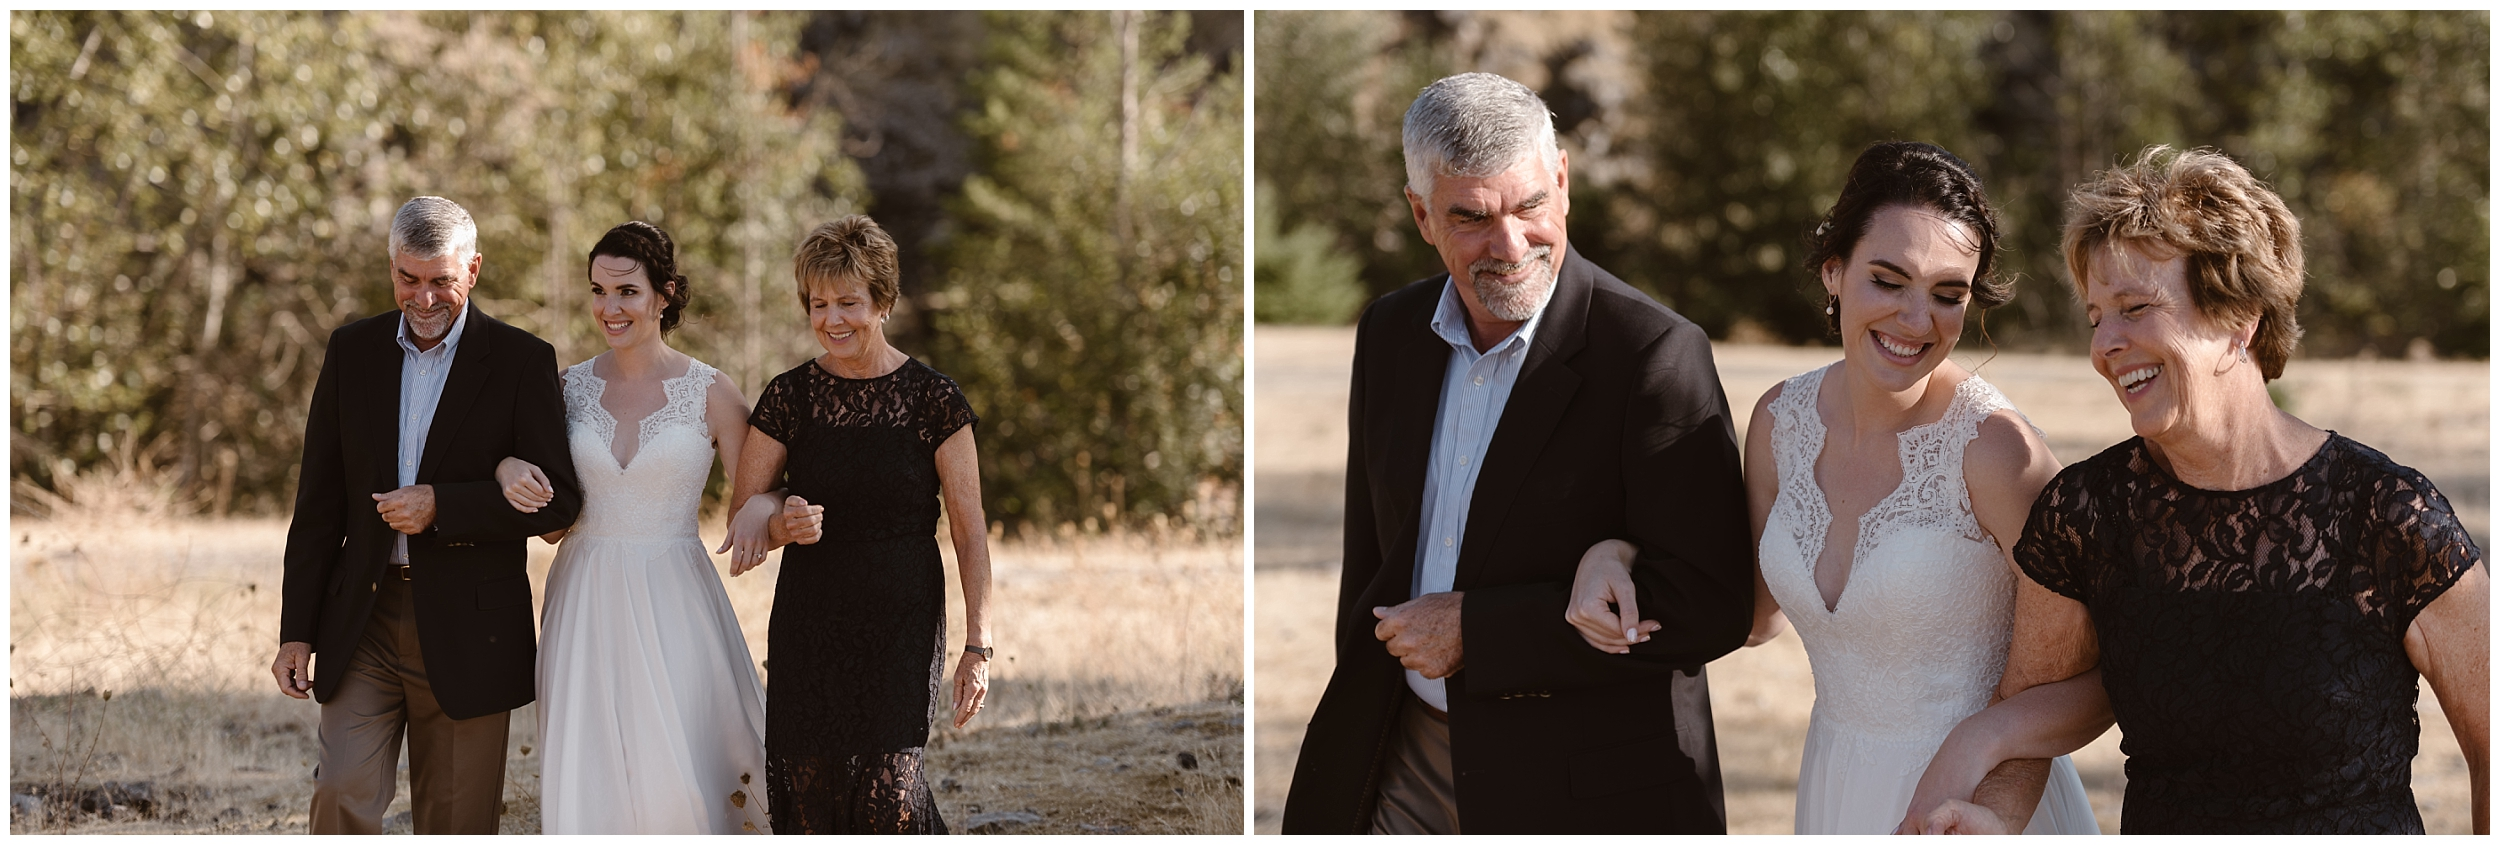 These side-by-side elopement pictures, captured by Oregon elopement photographer Adventure Instead, show Lauryn, the bride, and her parents, walking down the aisle, in a manner of speaking. Lauryn and David chose to elope with family in Oregon, making their Columbia River Gorge elopement more of a small simple wedding.